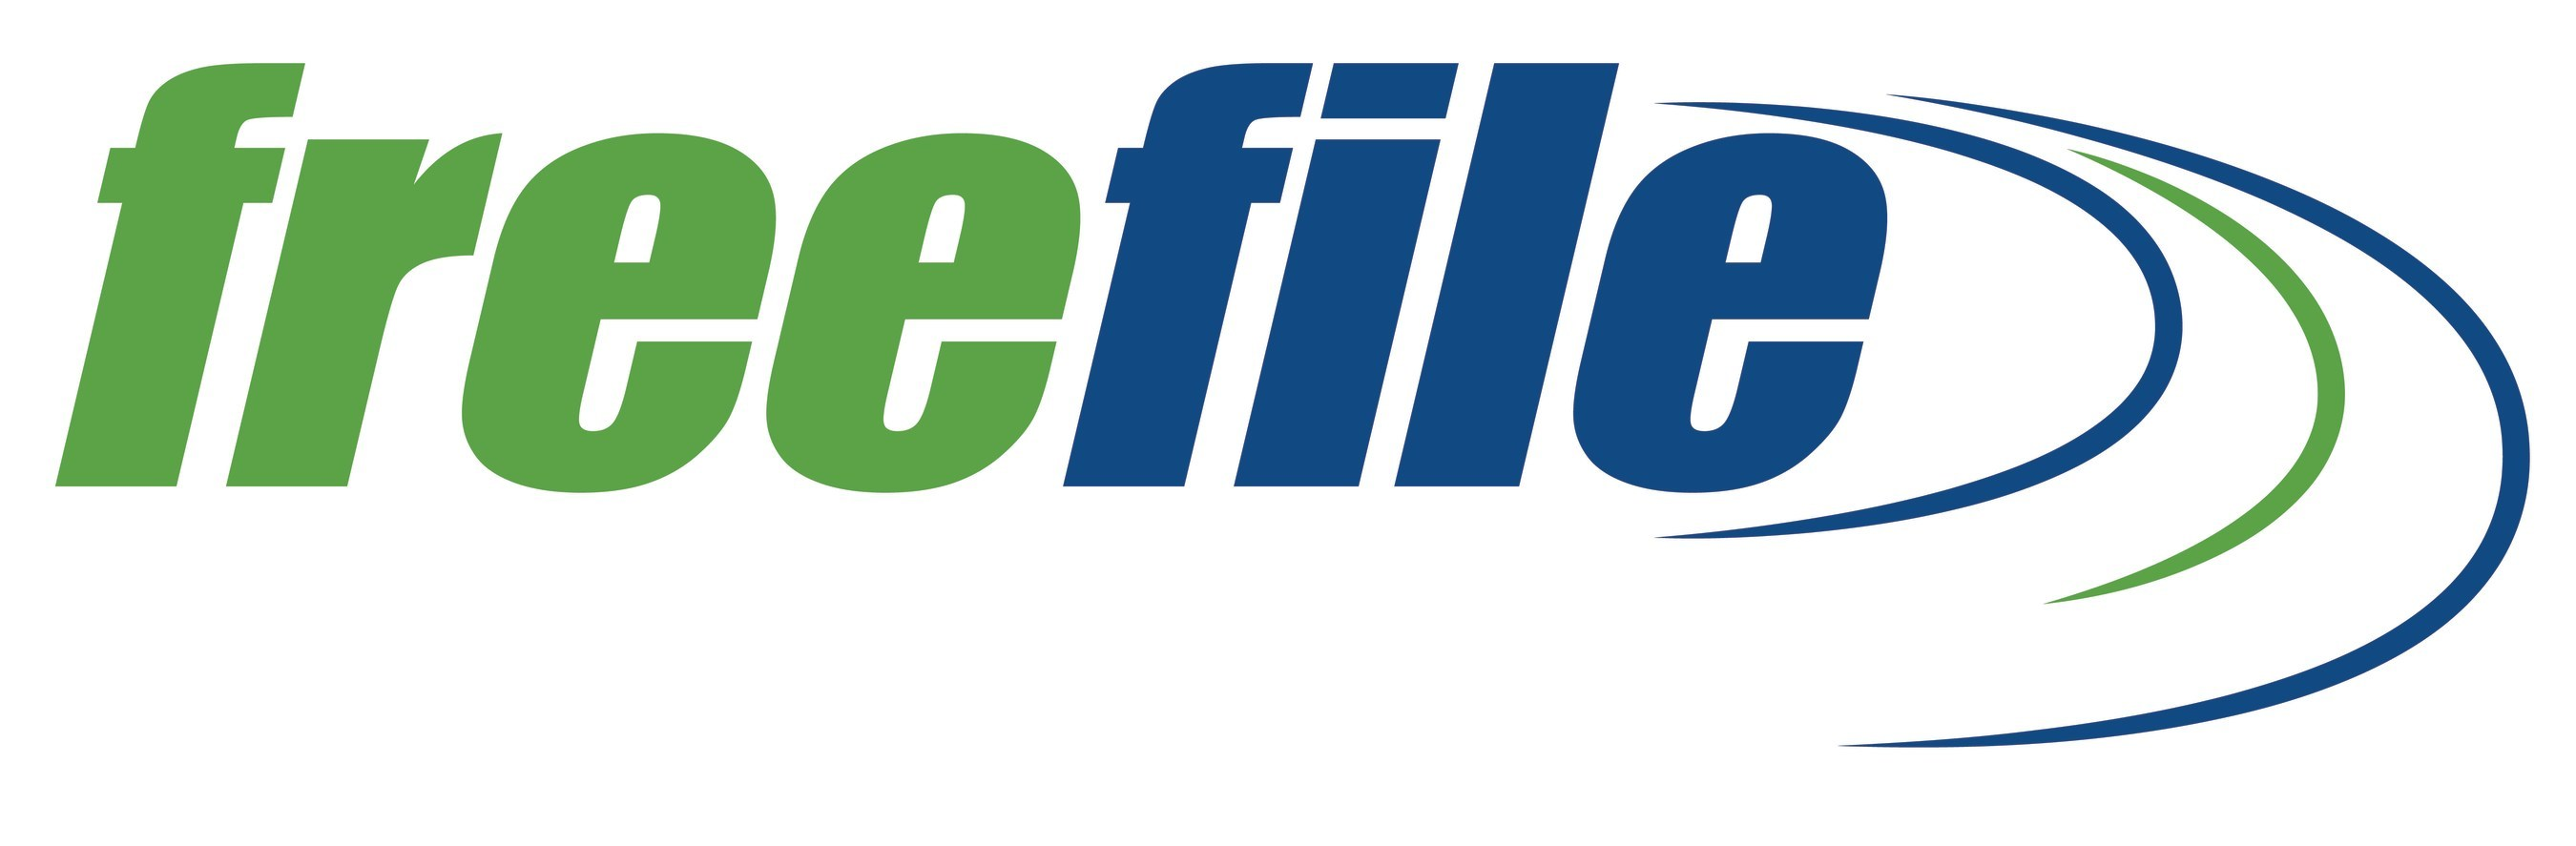 Free File Alliance & IRS Today Launch